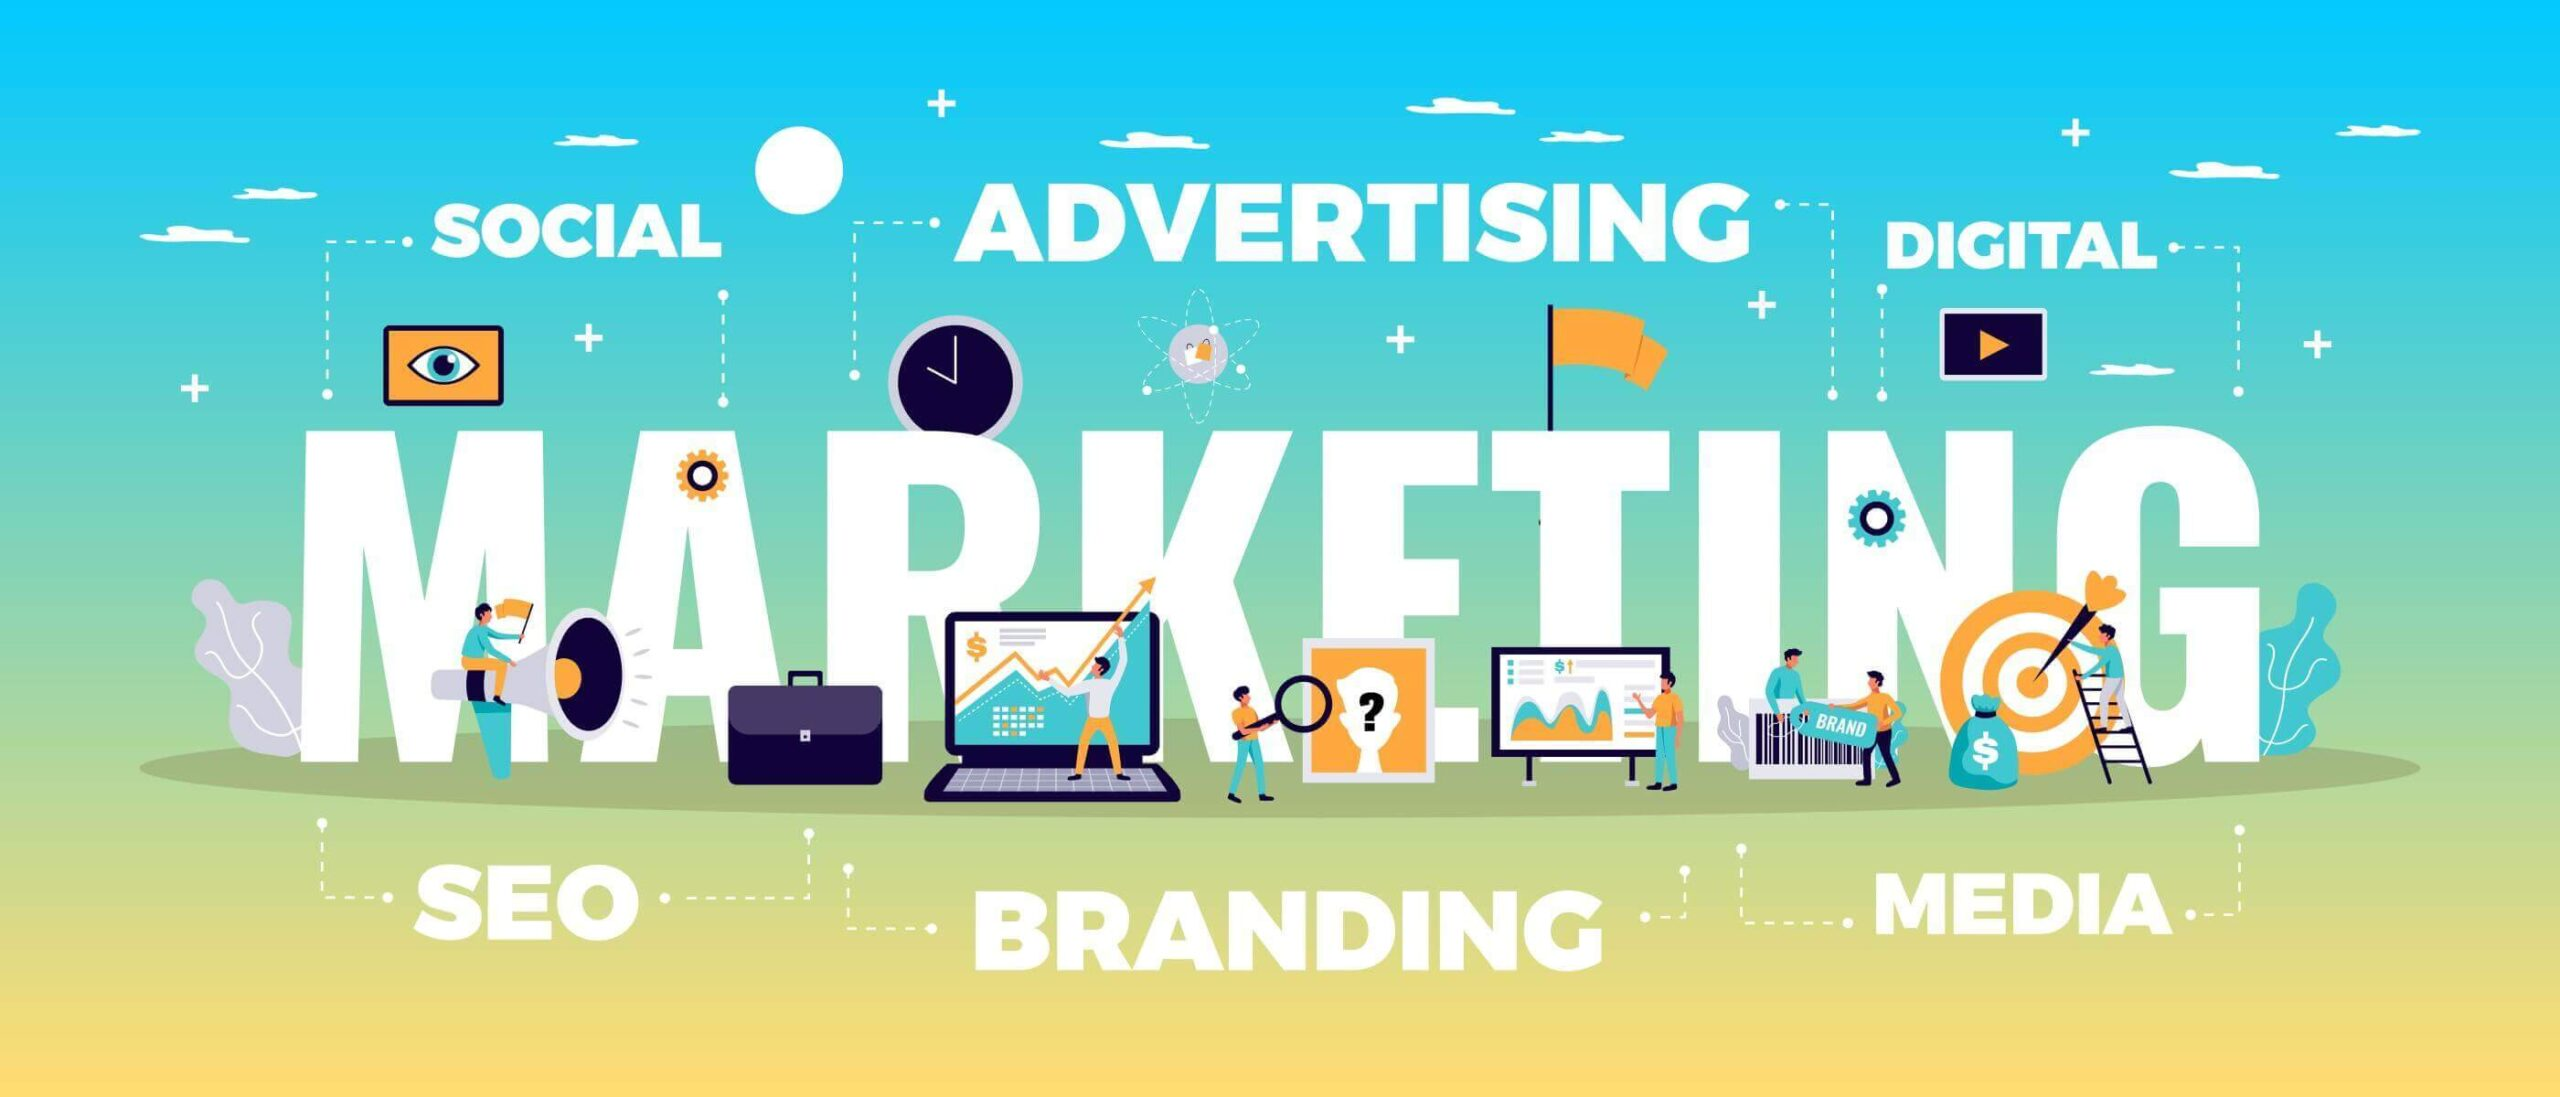 use-of-technology-for-digital-marketing